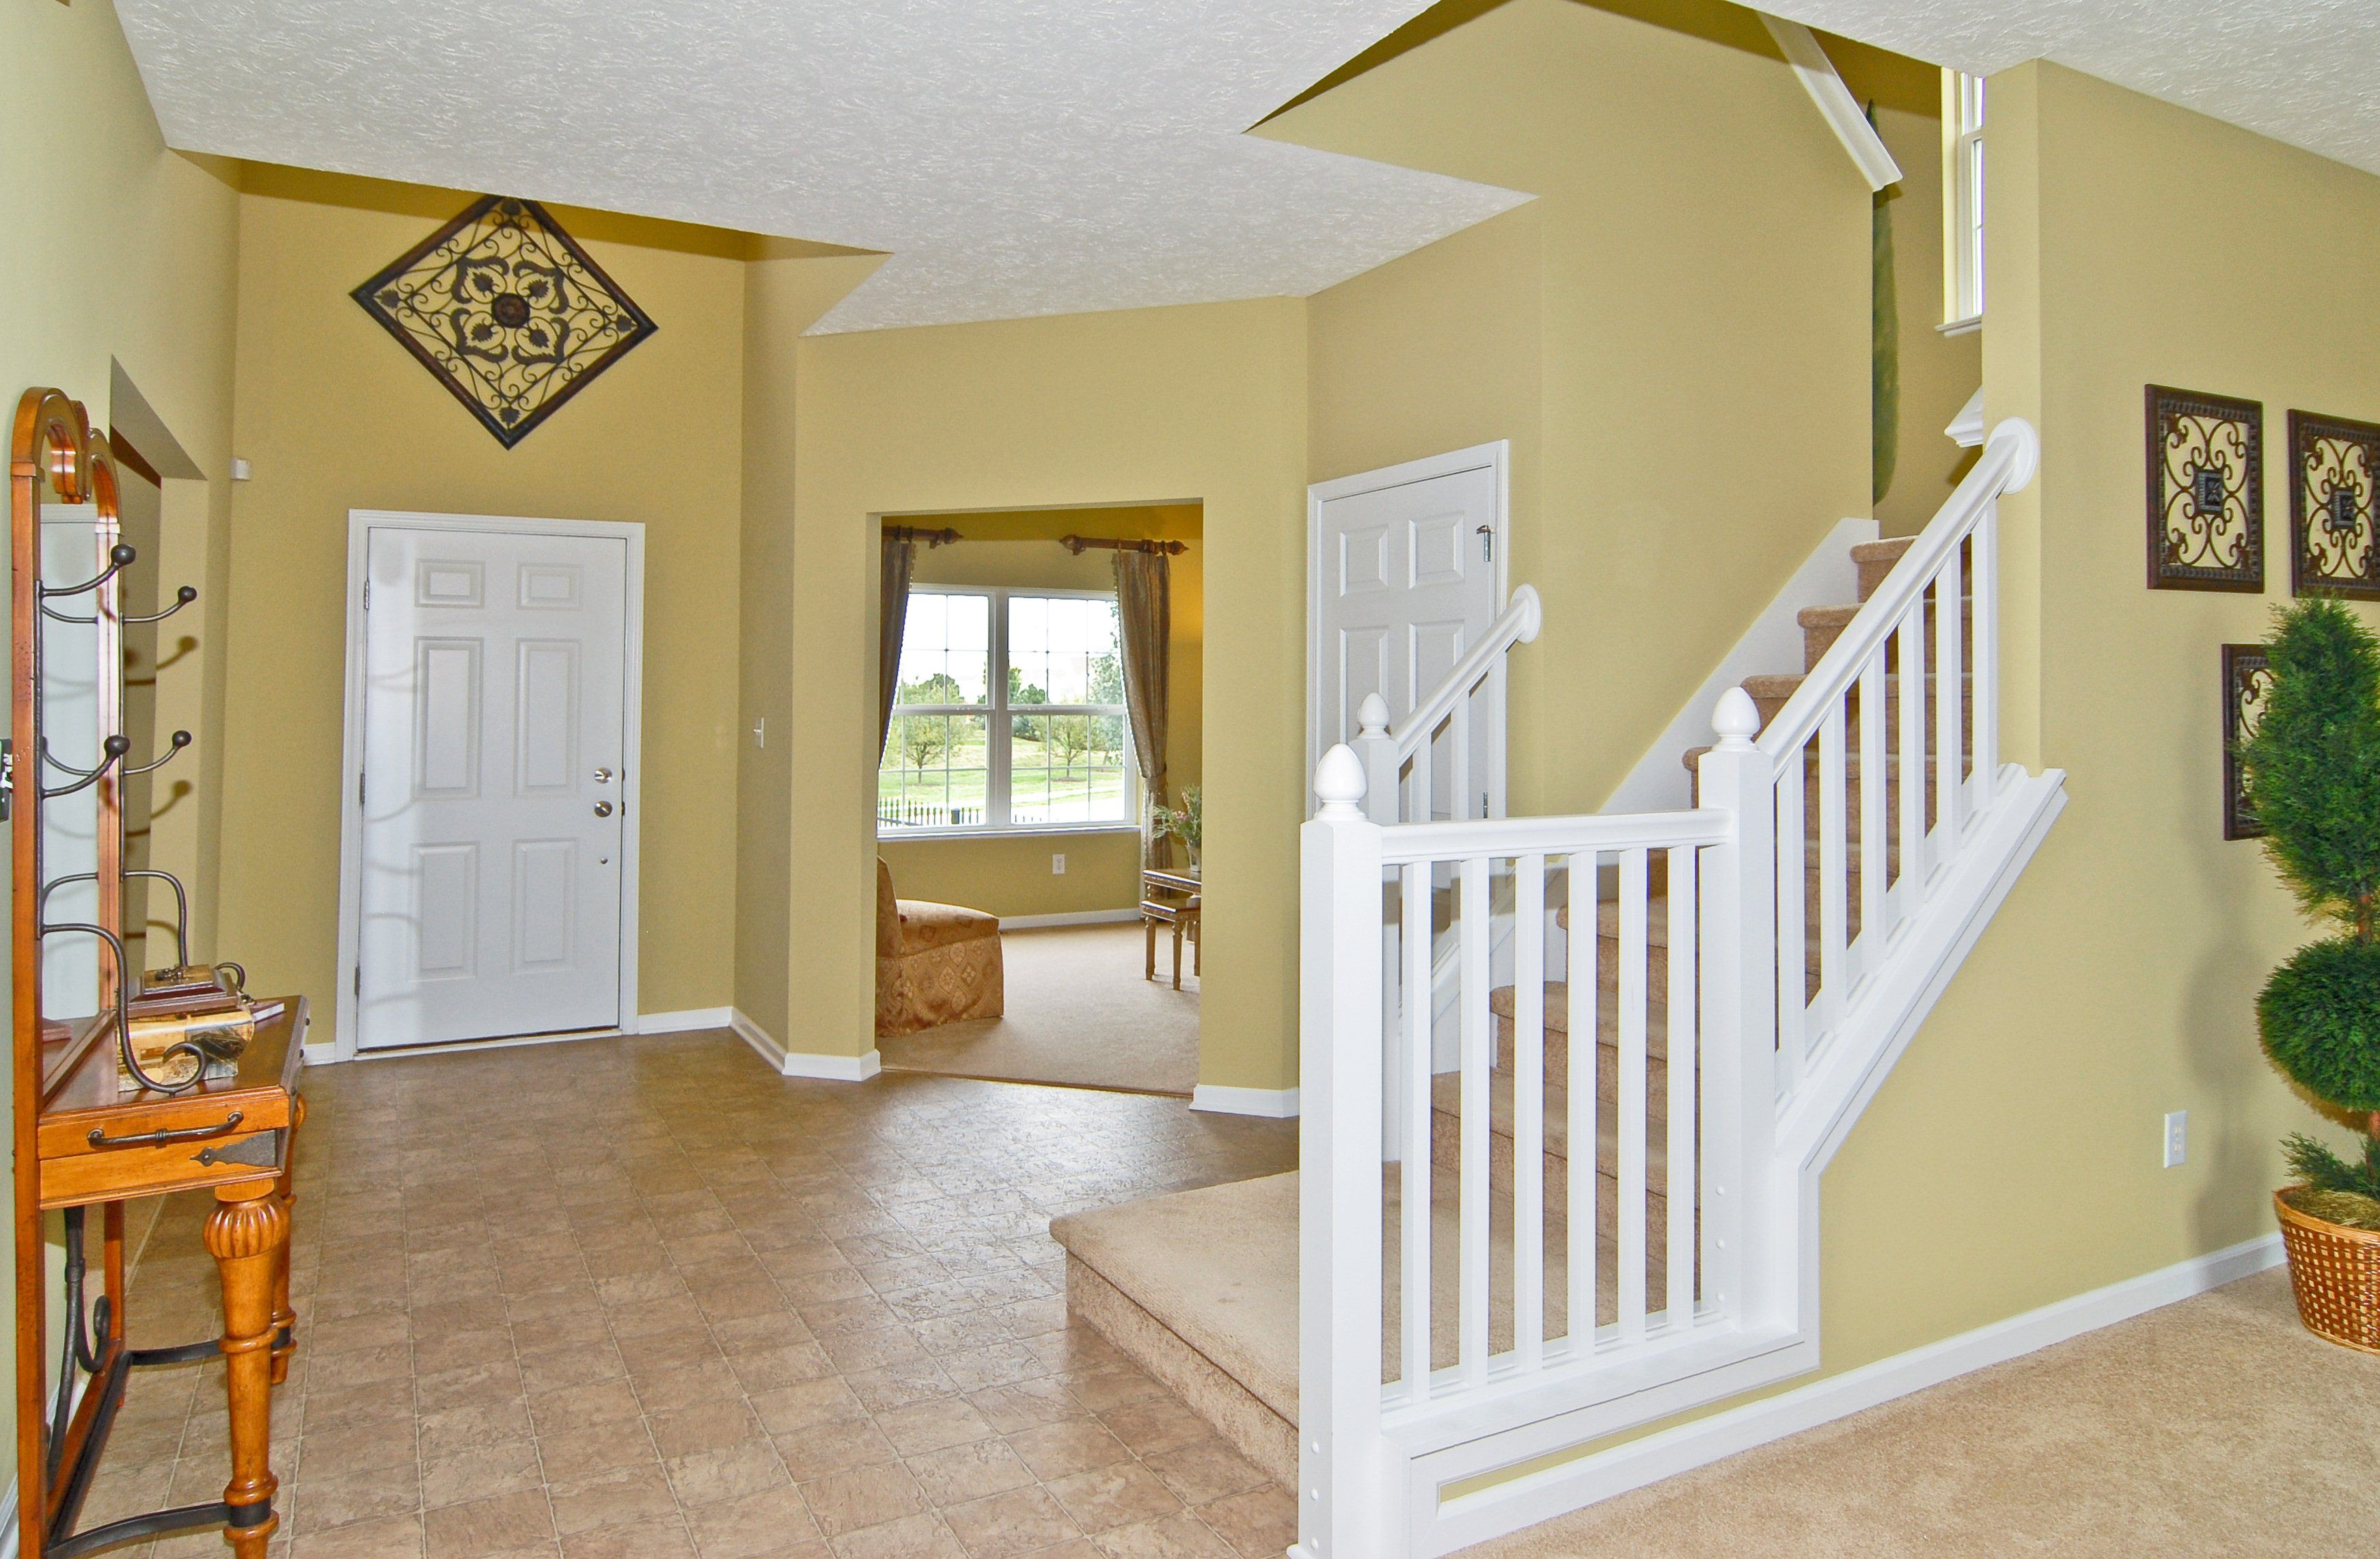 The Wellen entry www.yourarborhome.com   New homes, New ...